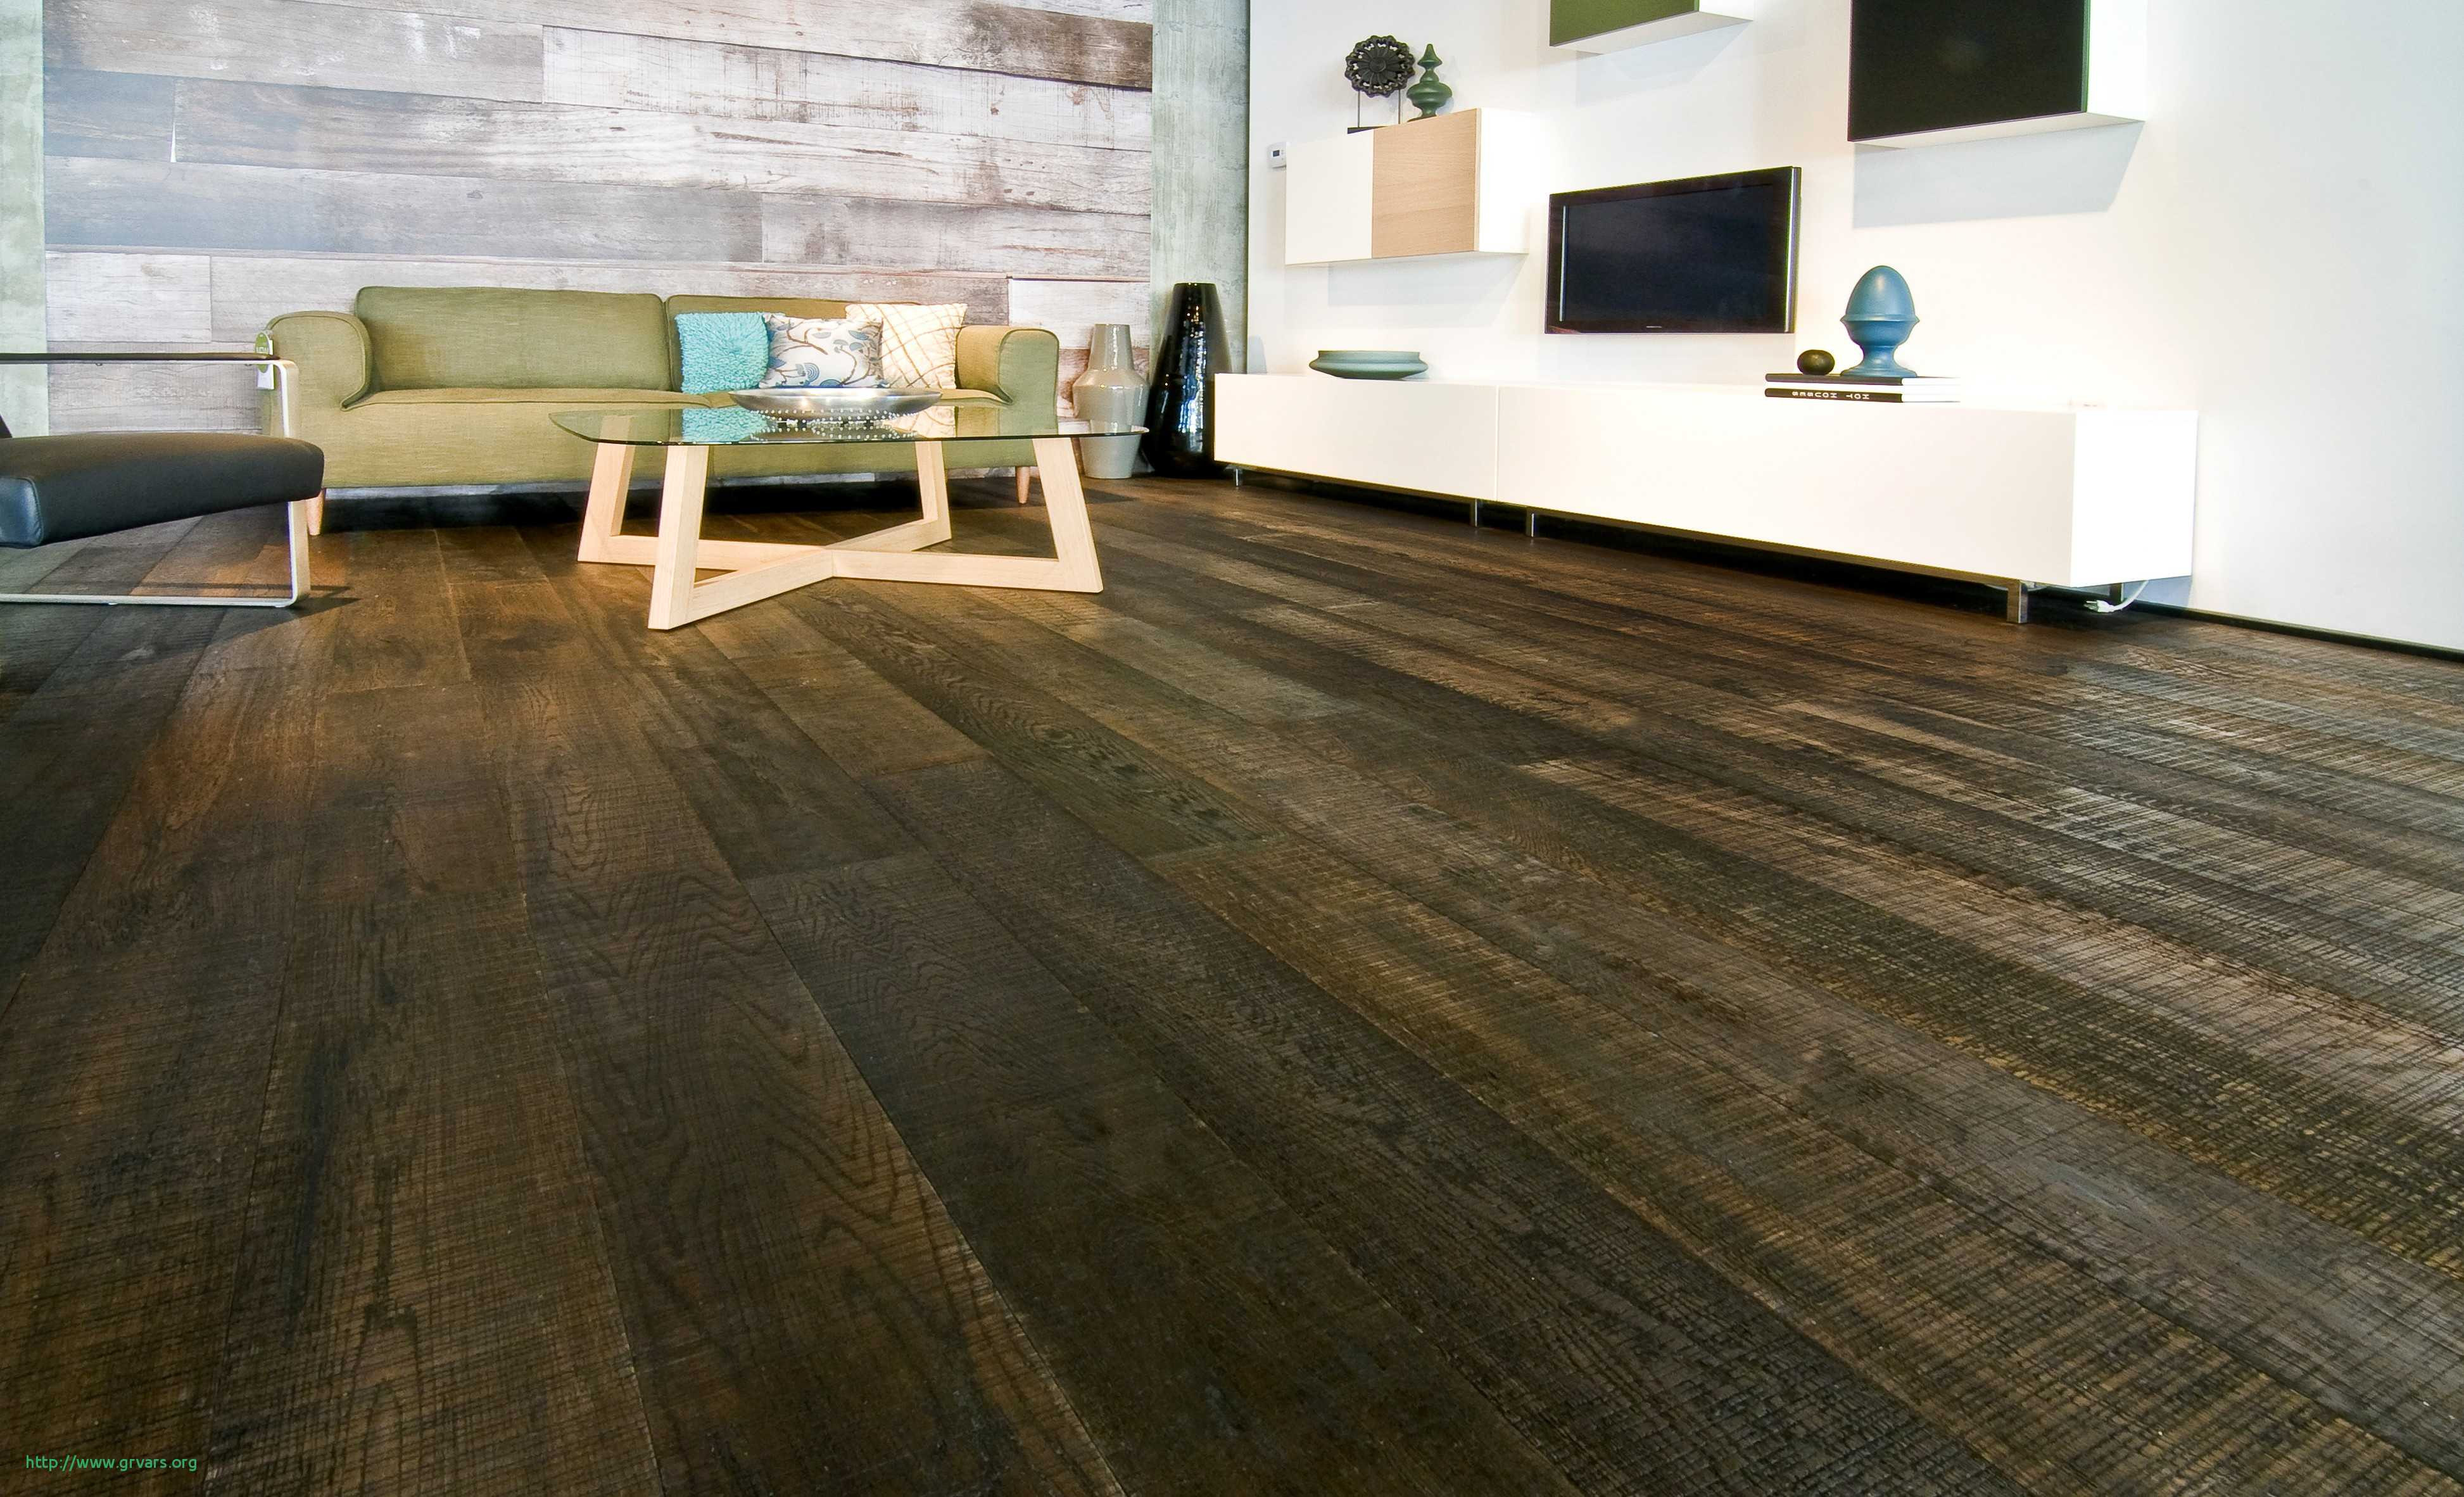 3 4 solid hardwood flooring of 20 impressionnant cheapest place to buy hardwood flooring ideas blog throughout acacia wood flooring where to buy hardwood flooring inspirational 0d grace place barnegat